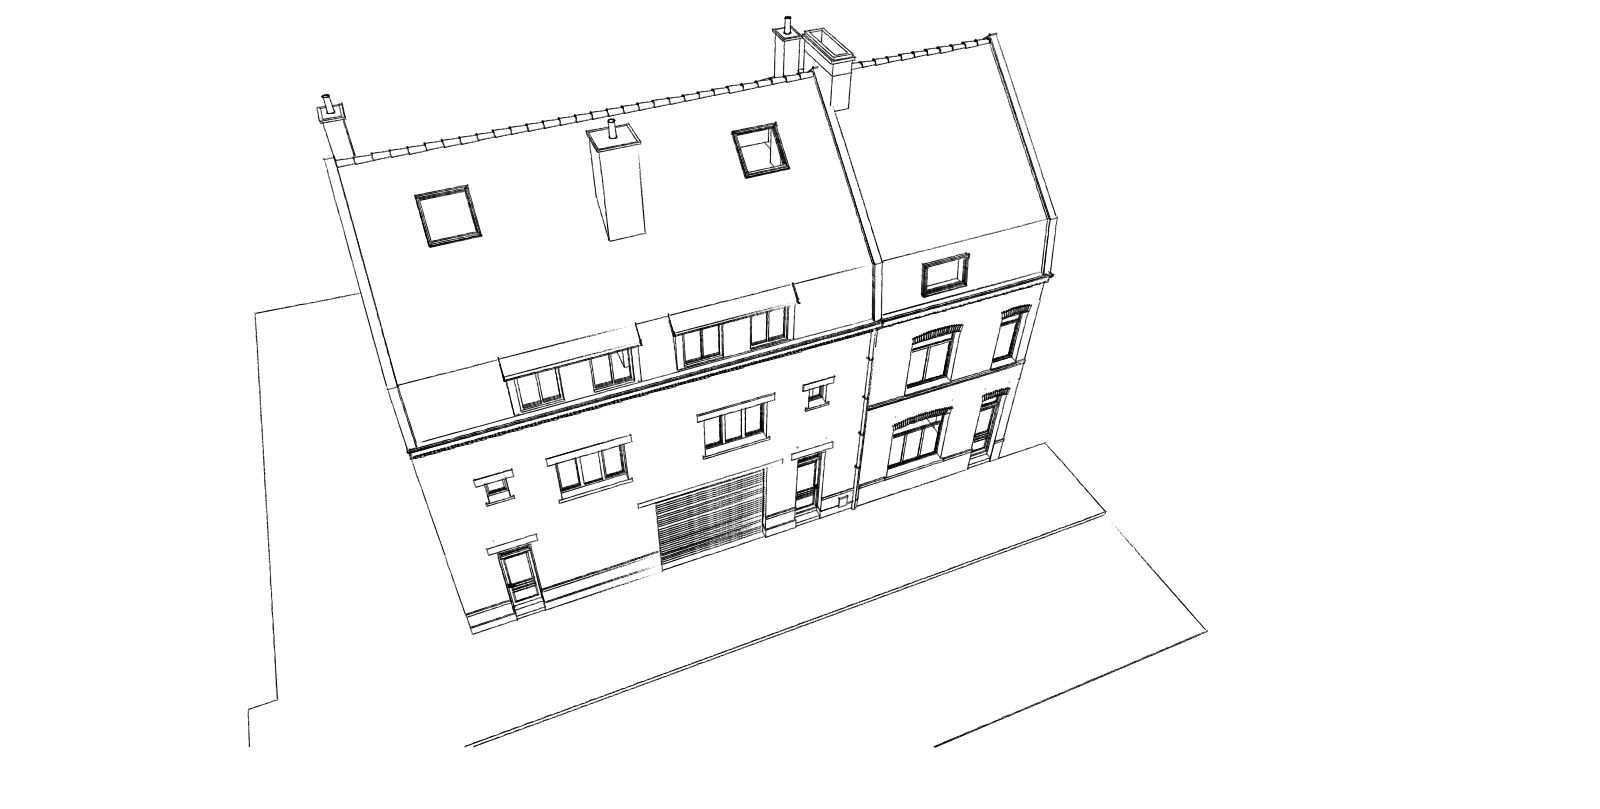 Division d une maison en 3 appartements avec l am nagement des combles la chapelle d for Amenagement combles permis de construire